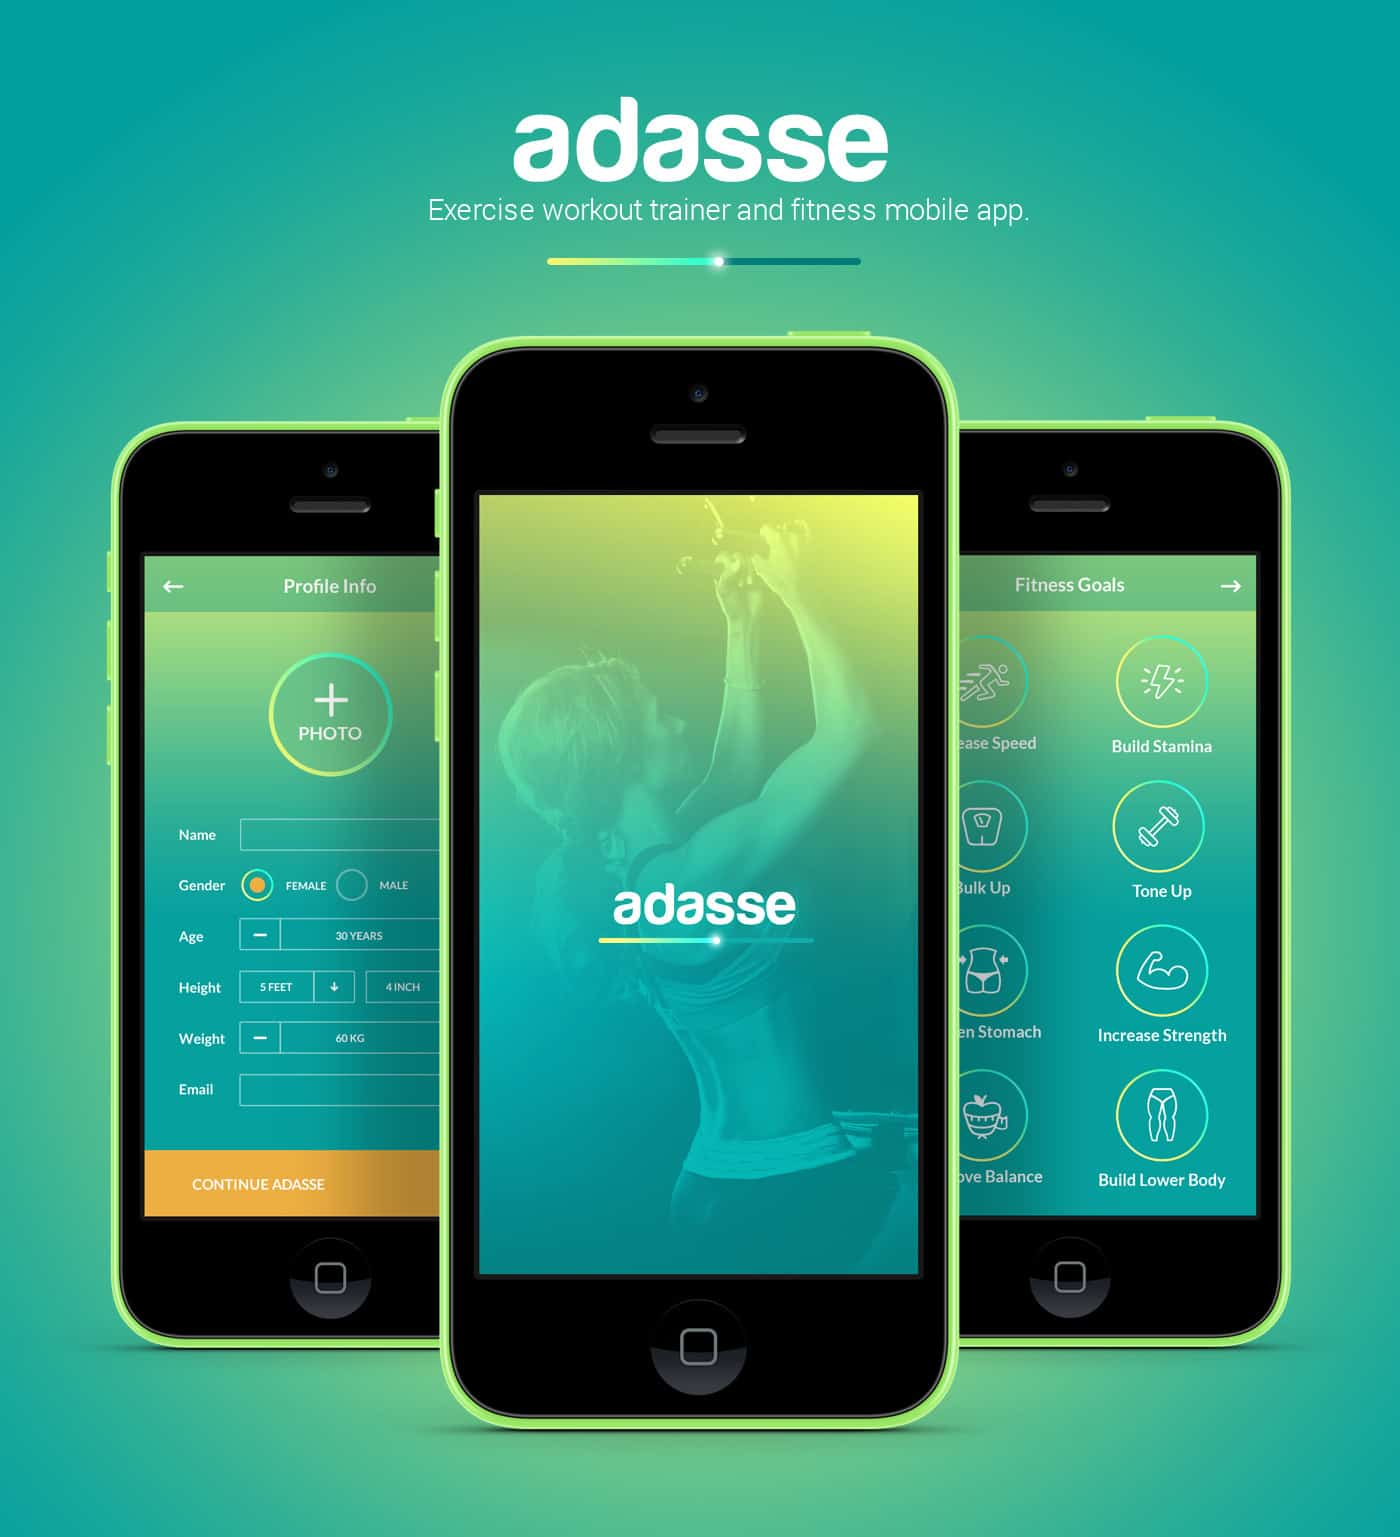 Adasse gym workout mobile app by naresh kumar design ideas for Blueprint app free